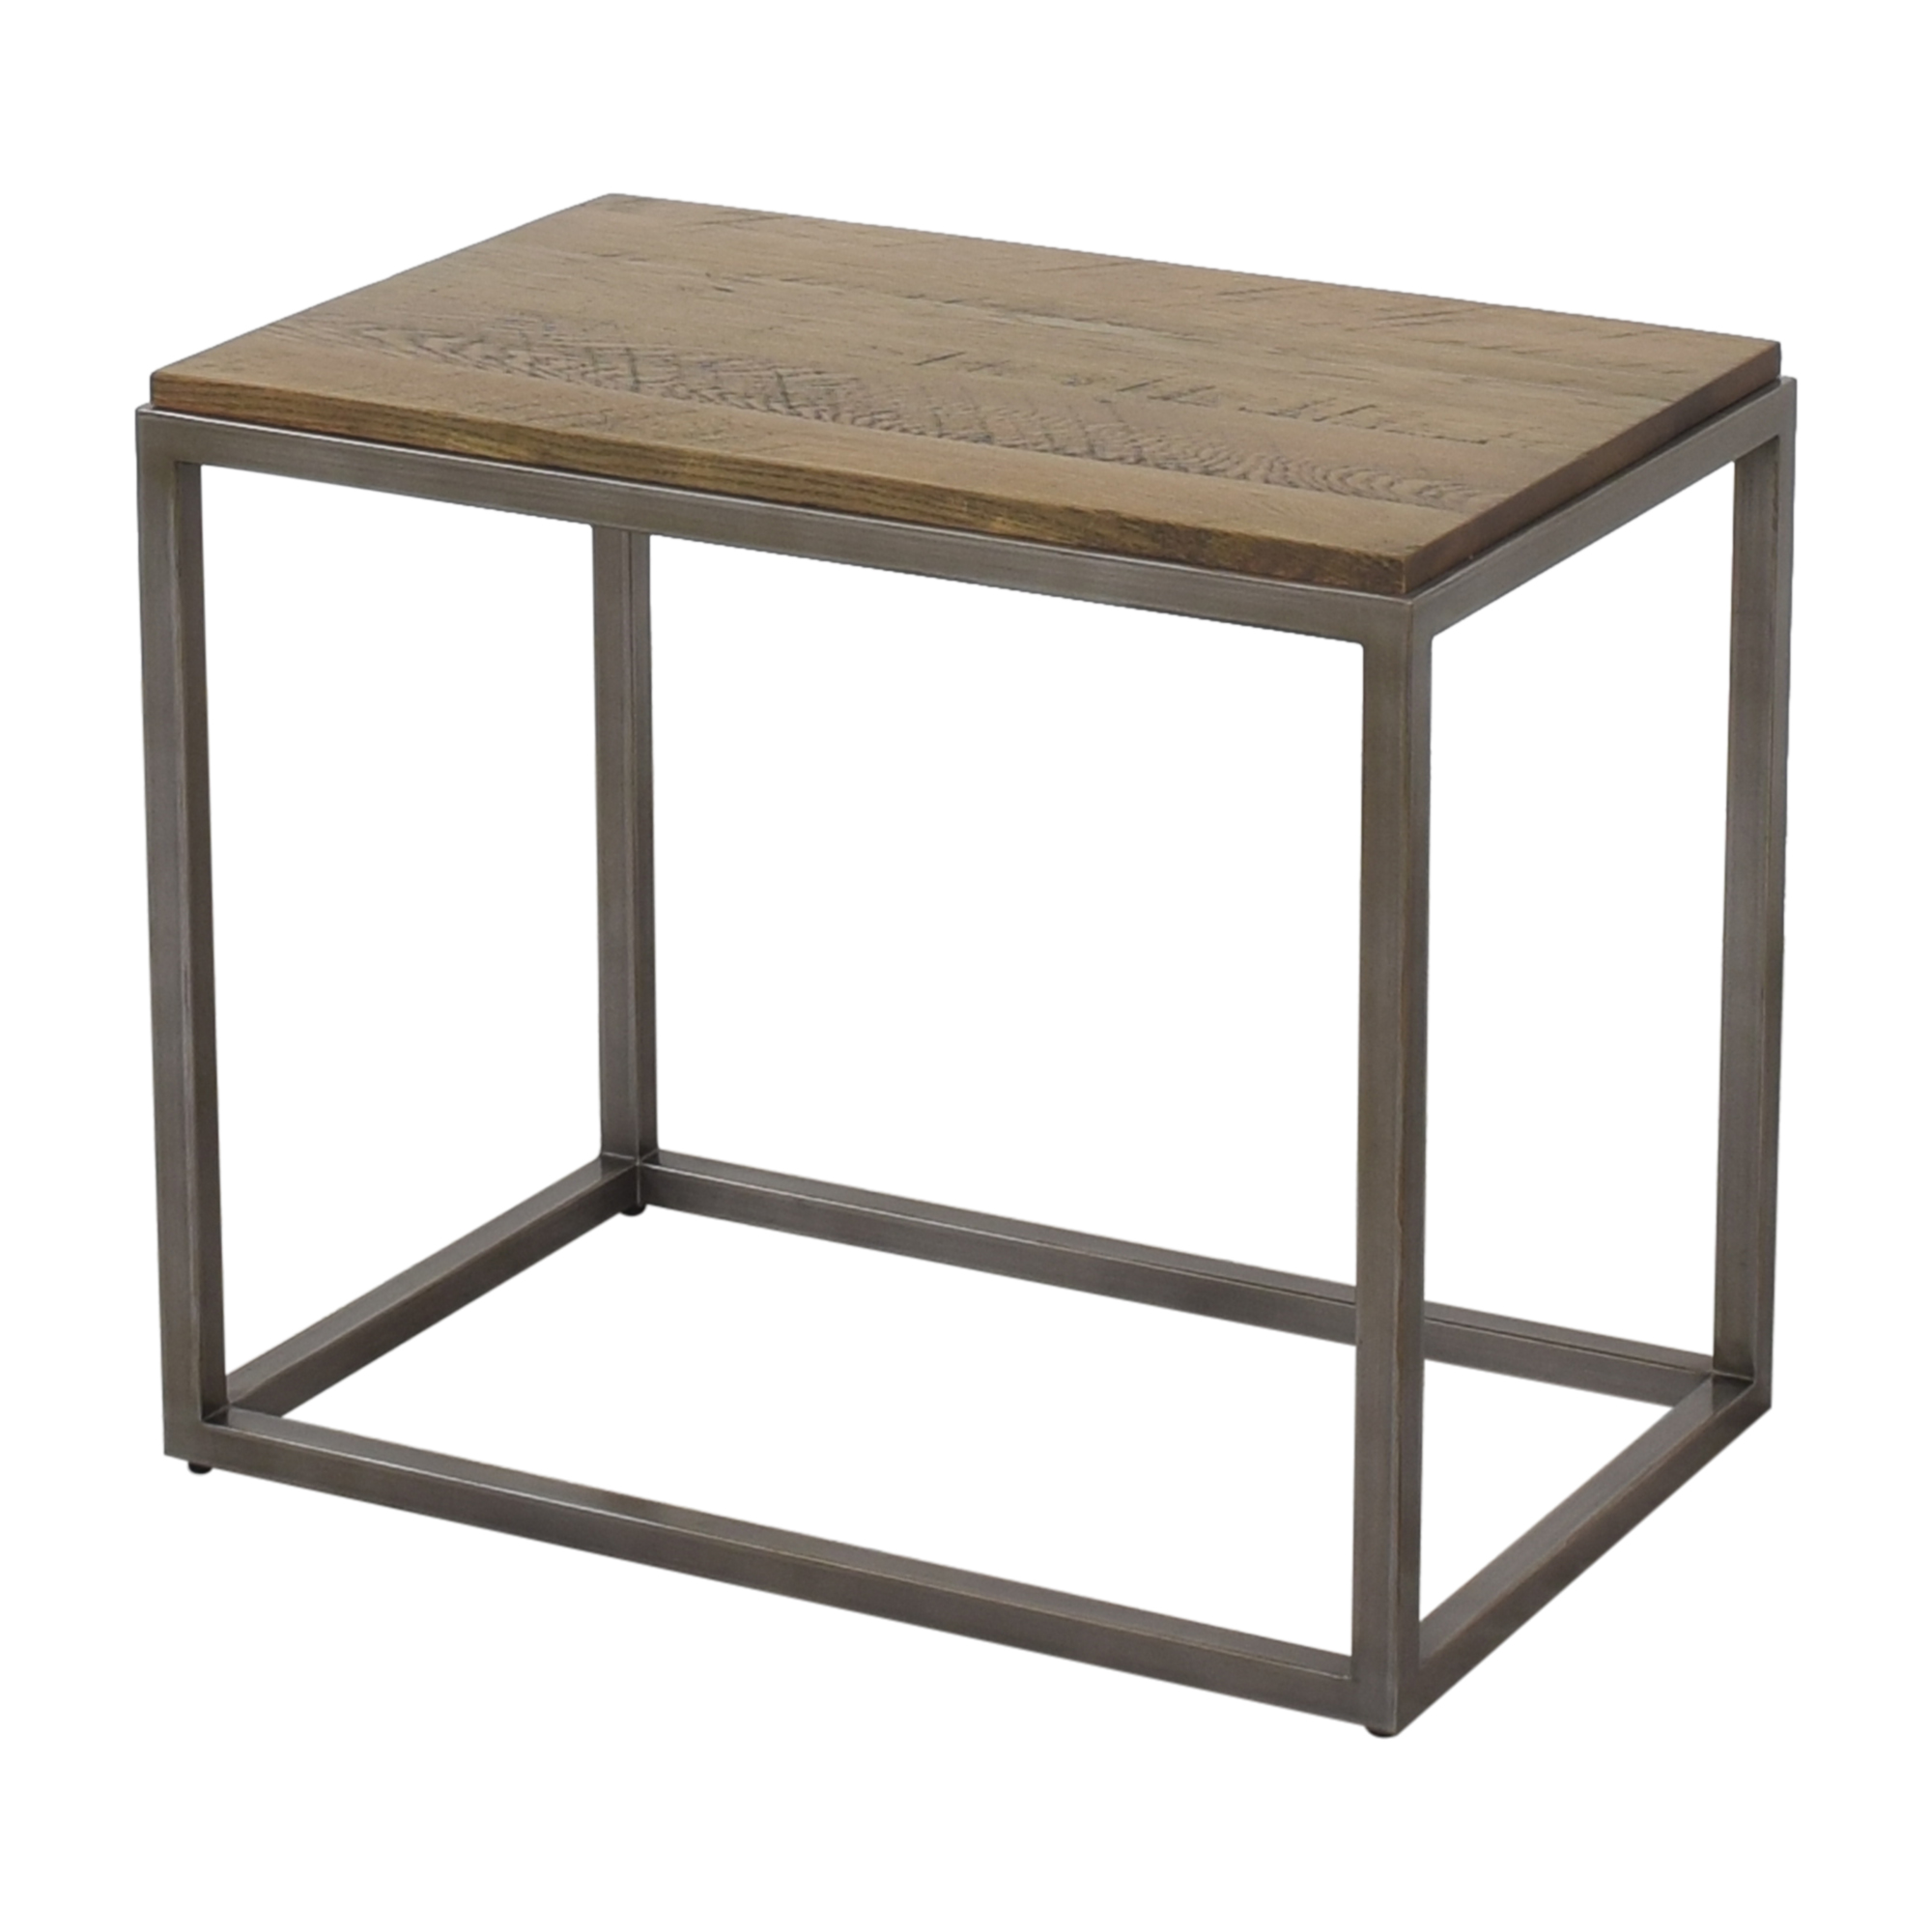 Ethan Allen Ethan Allen Borough End Table discount